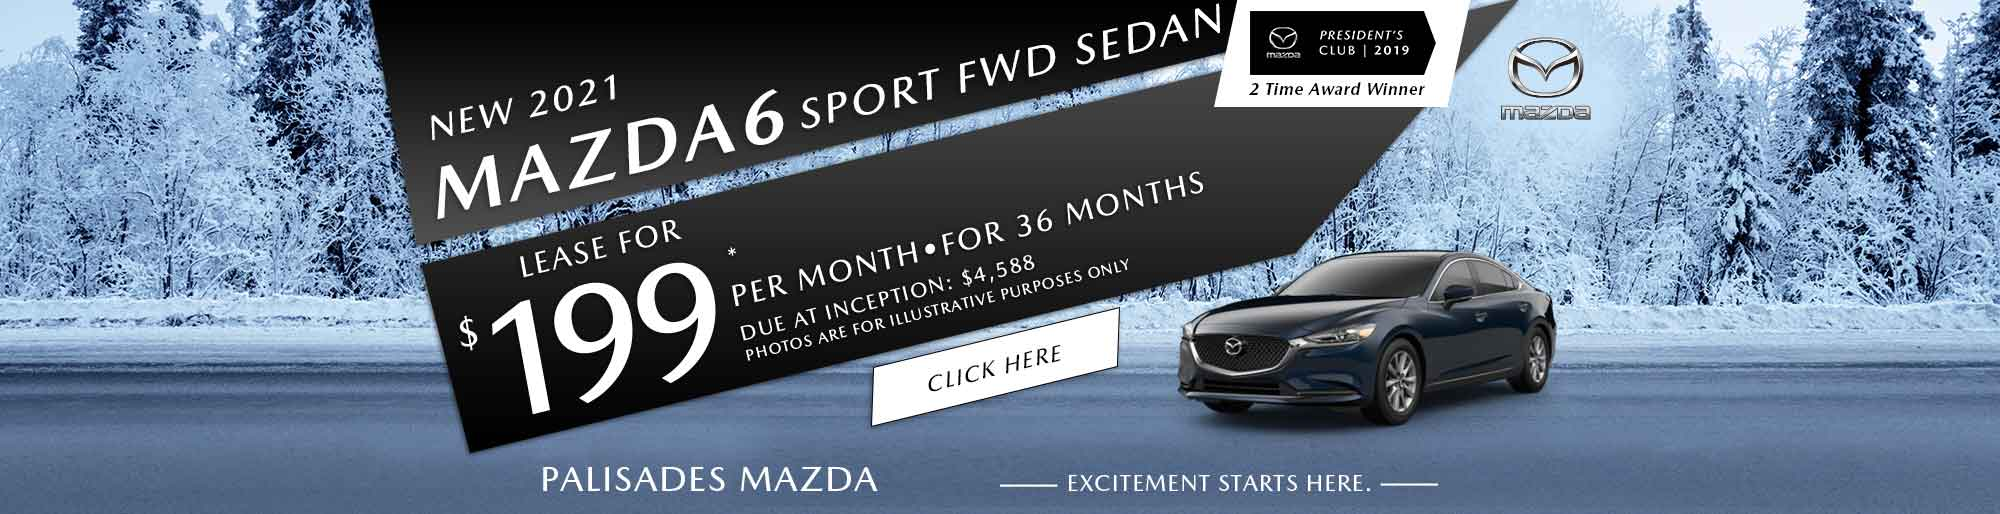 Mazda6 lease deal image